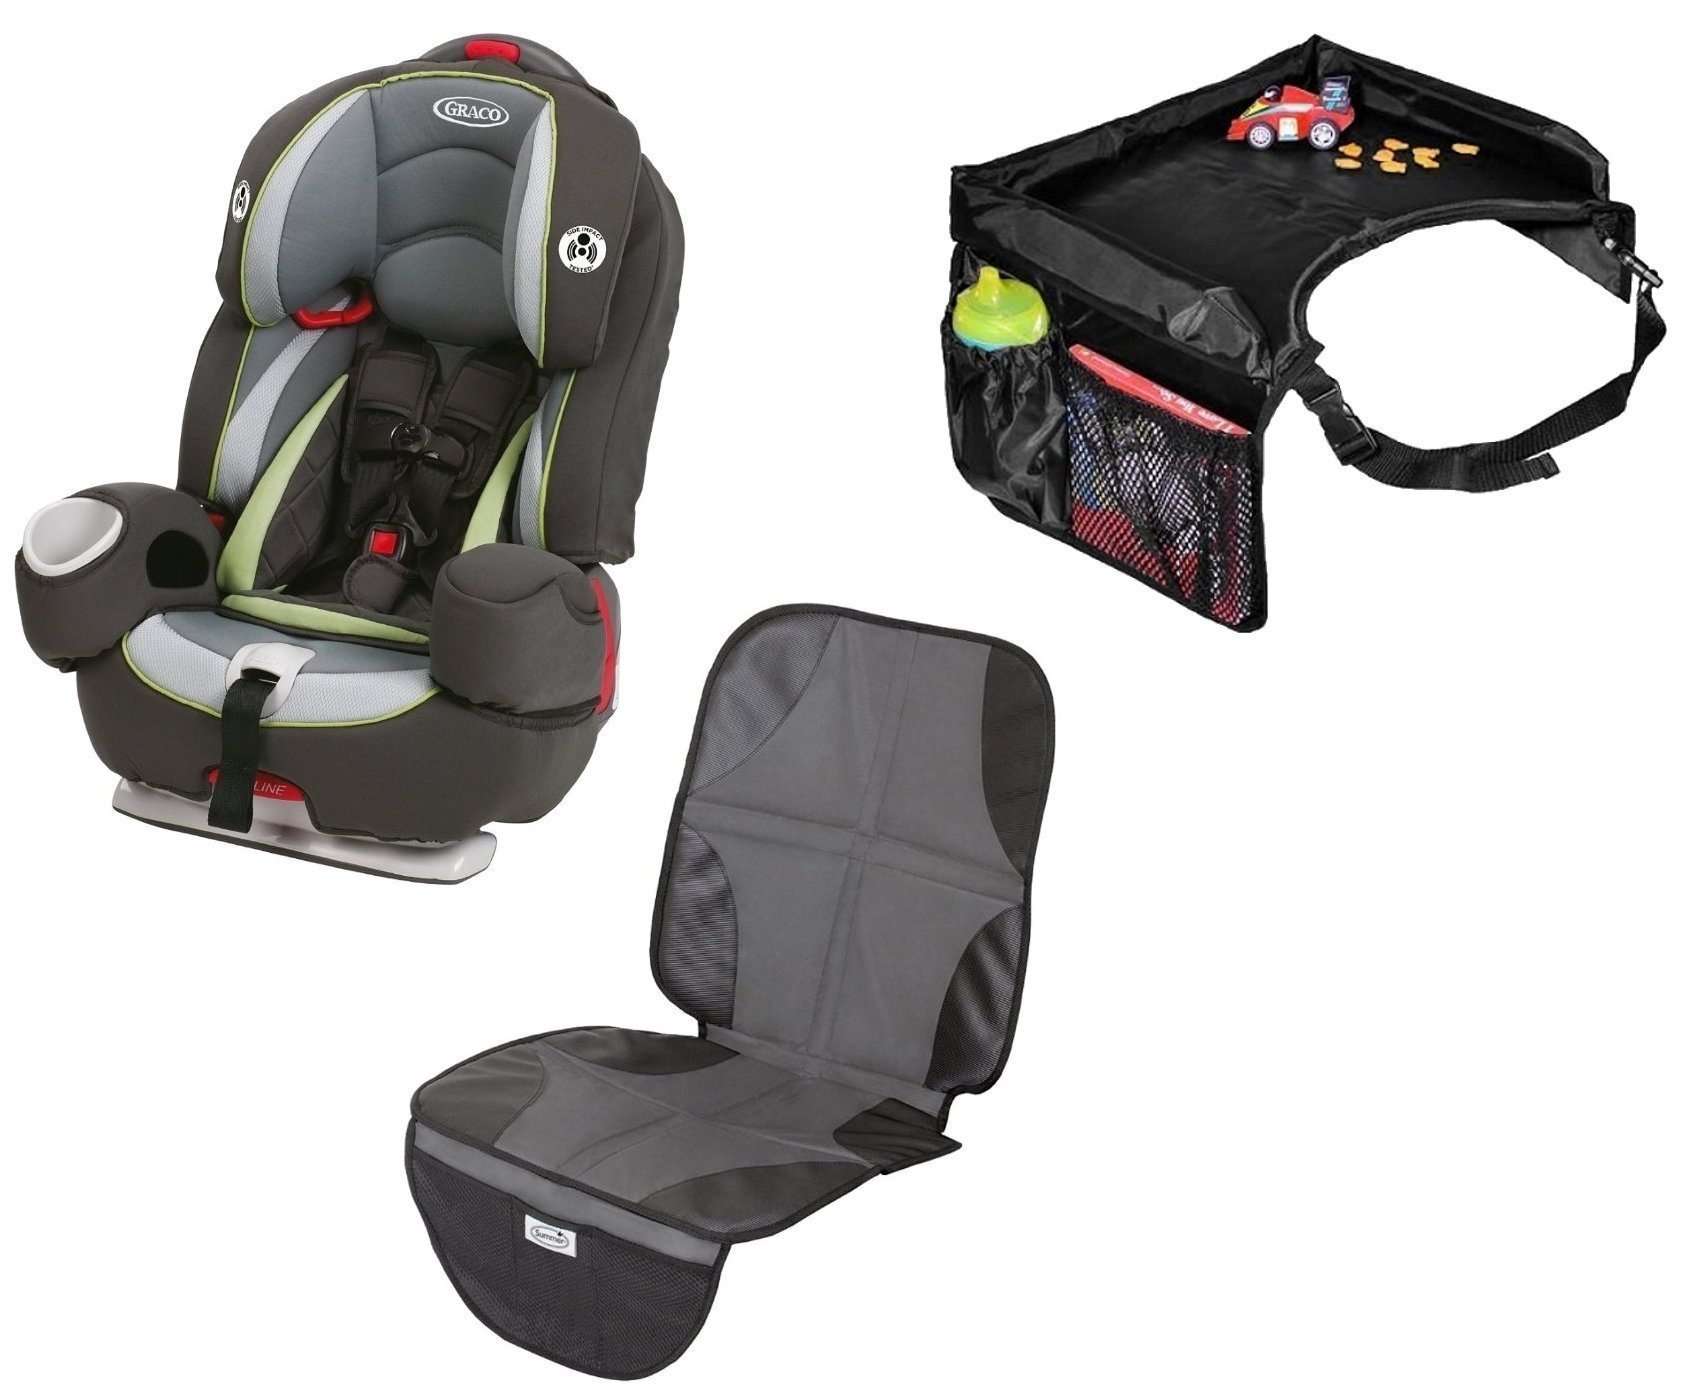 Graco Argos 80 Elite 3 In 1 Car Seat With Snack Tray Mat Go Green